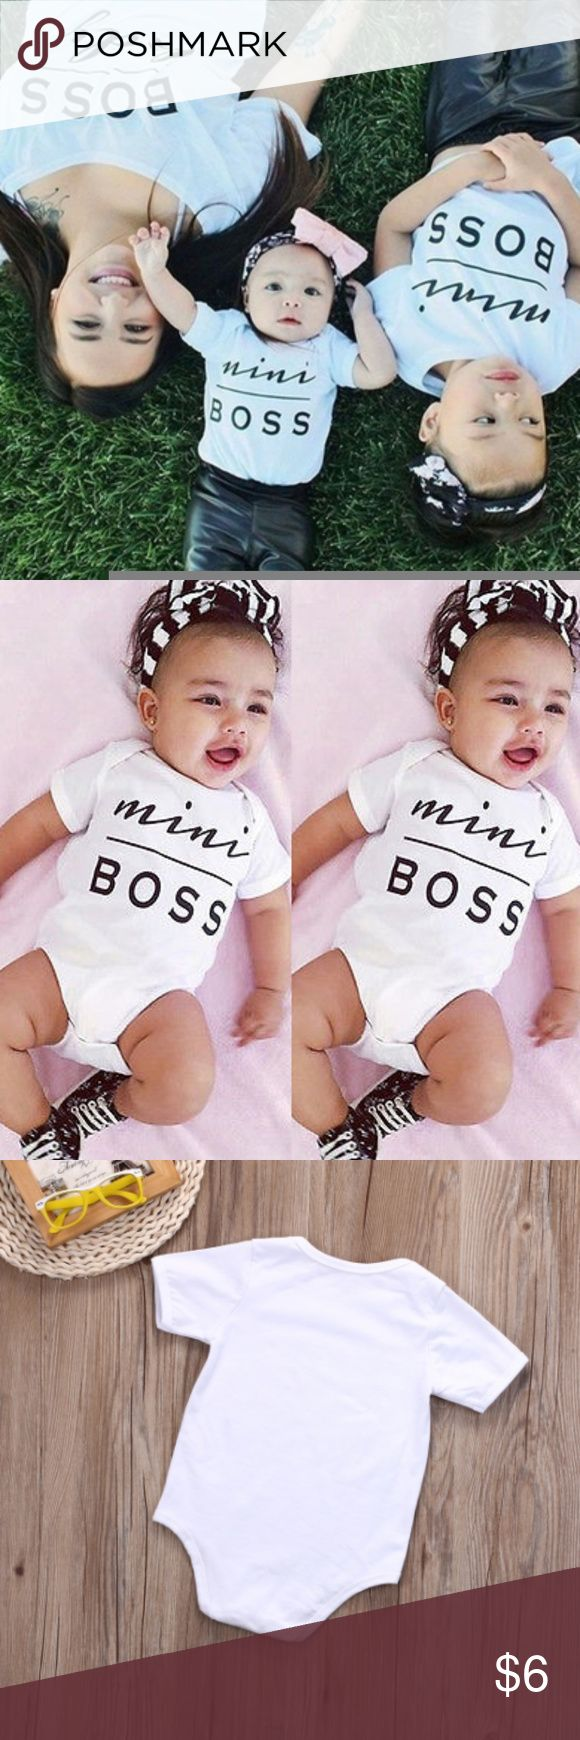 """6-9 mo. onesie """"Mini Boss"""" Infant one piece onesie matches size small child t-shirt with same title One Pieces Bodysuits"""